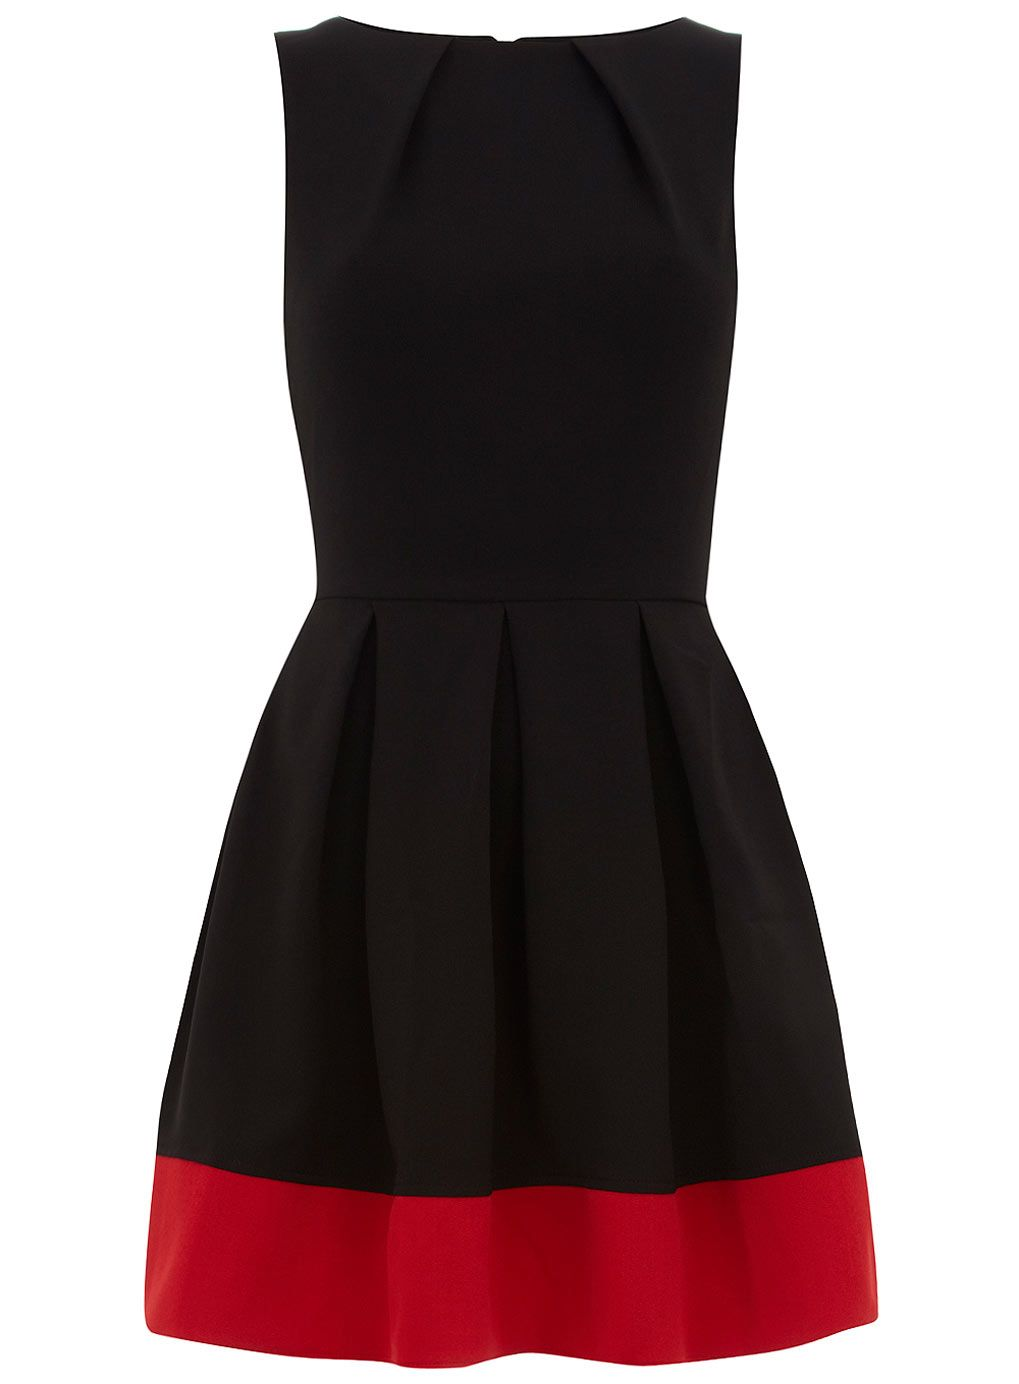 Black dress with touch of red - I Could Imagine This For A Black And Red Wedding Bridesmaid S Dress Contrast Hem From